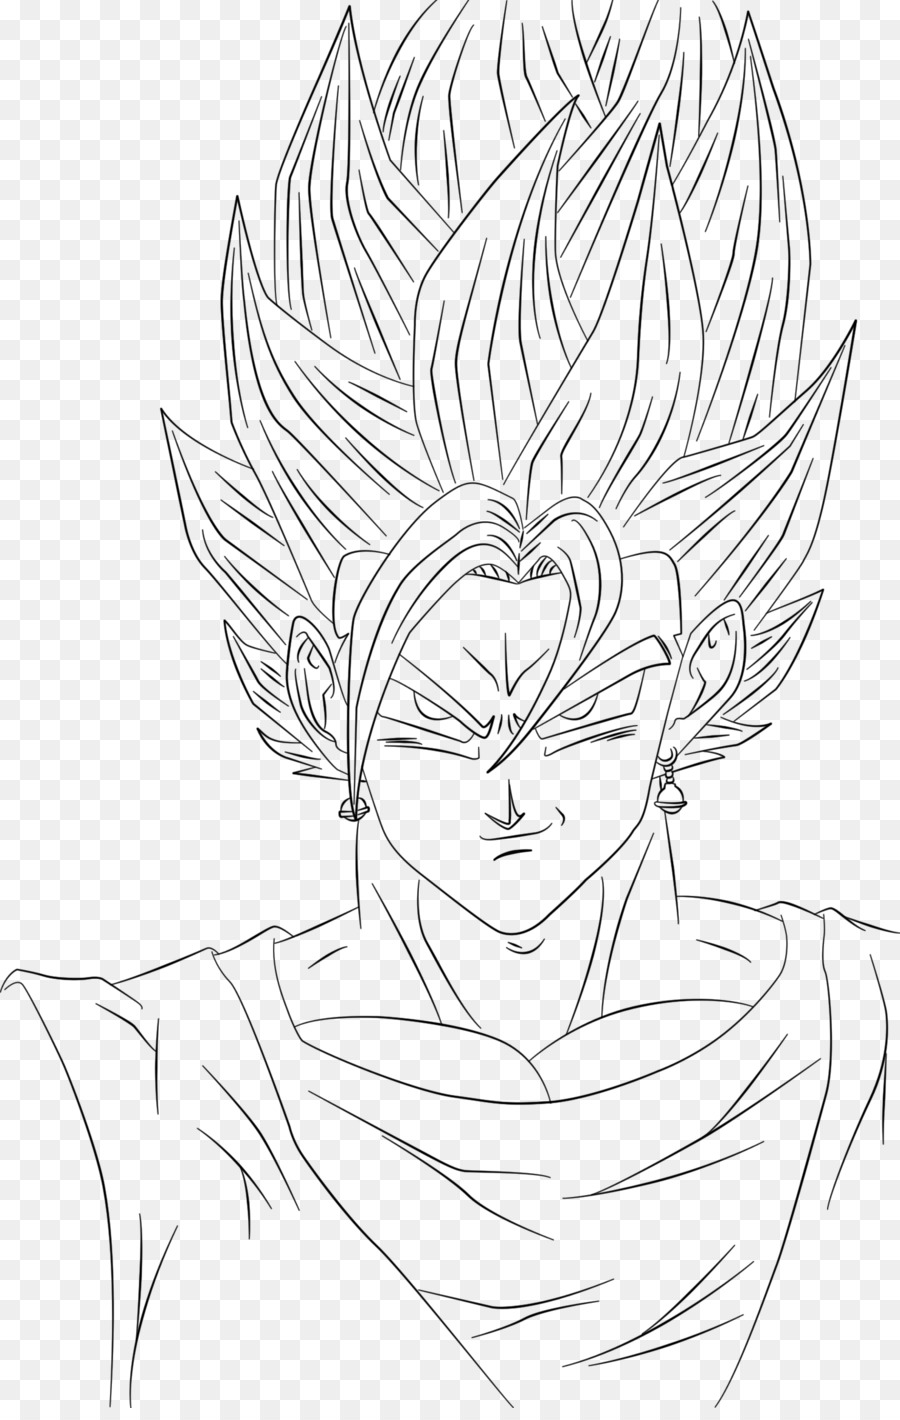 Goku Vegerot Line Art Drawing Sketch Goku Png Download 900 1408